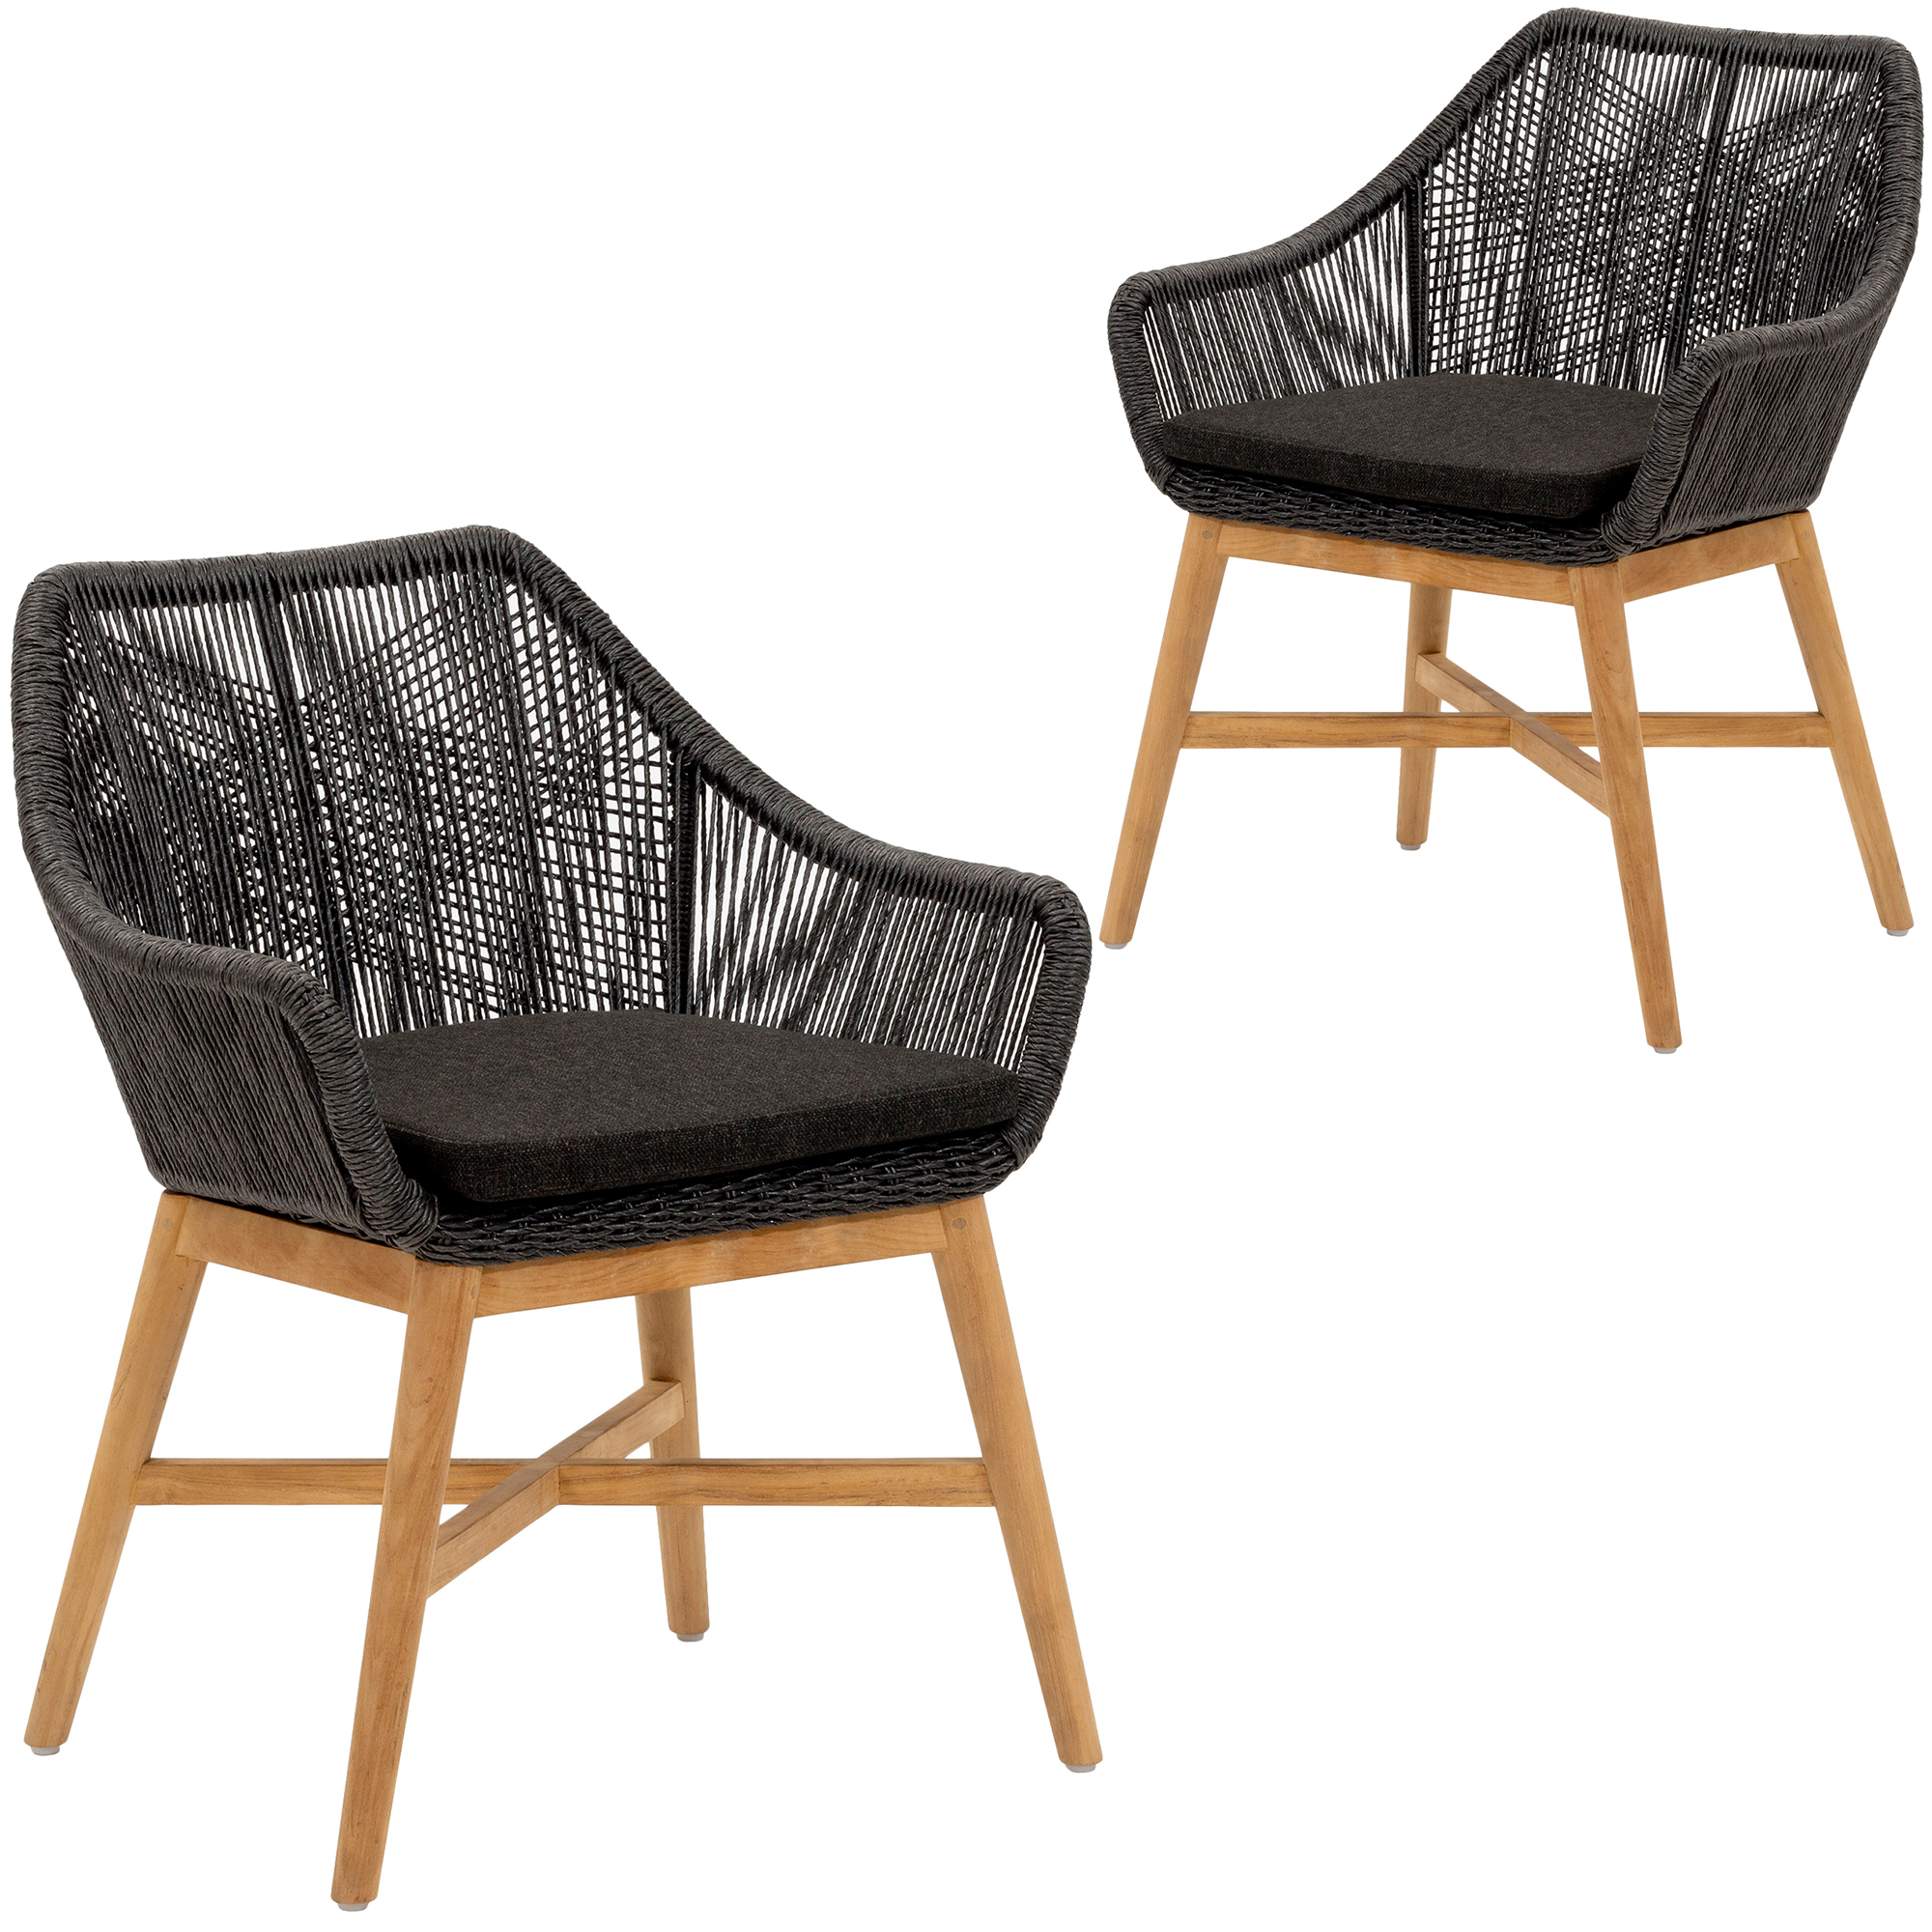 Sku chab1500 black stream pe wicker outdoor dining chairs is also sometimes listed under the following manufacturer numbers inz 03 ch